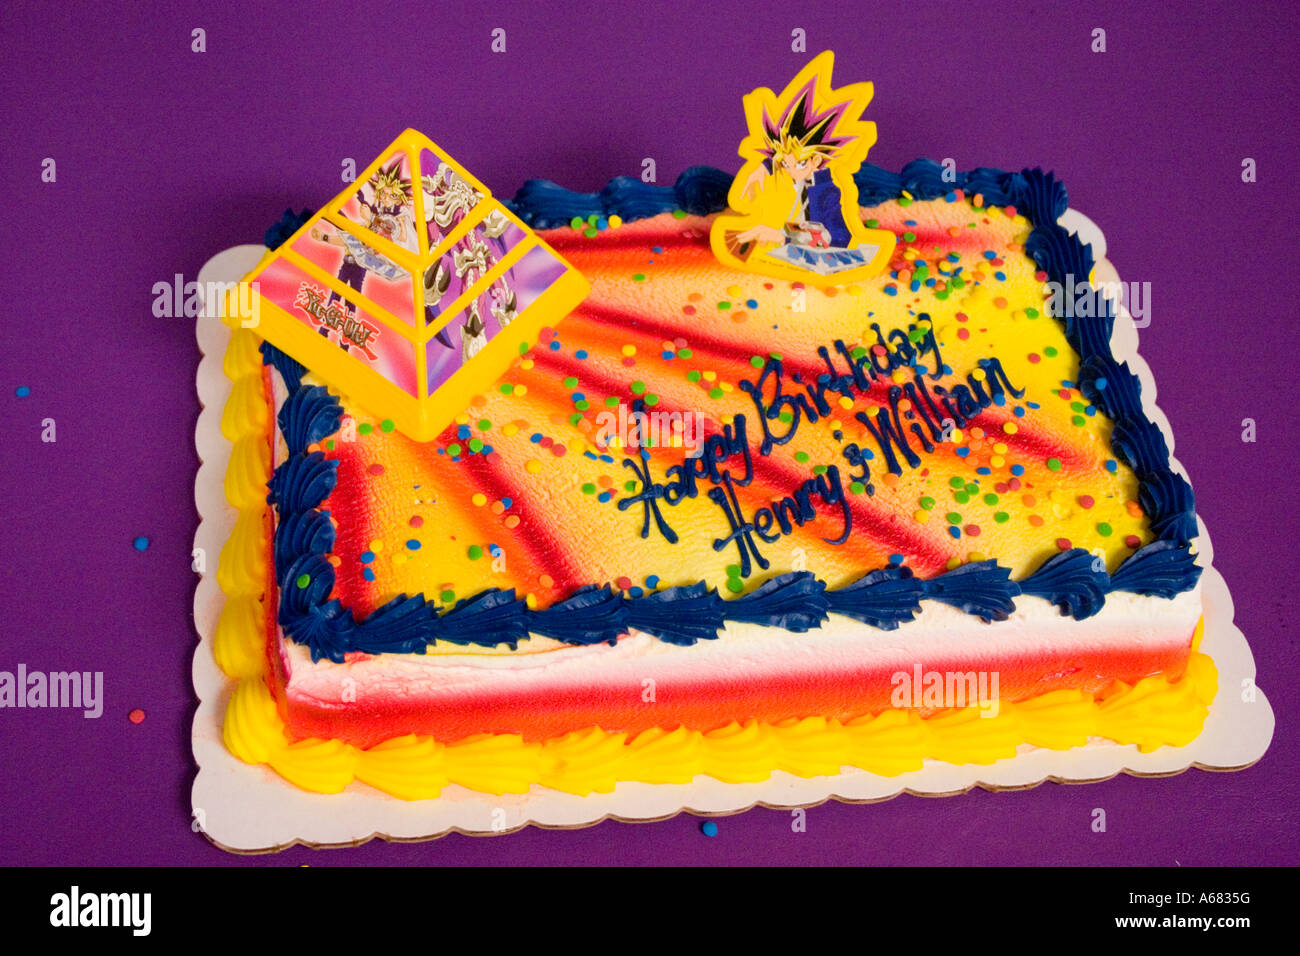 Yami Yugi on a YuGiOh theme birthday cake for Henry and William